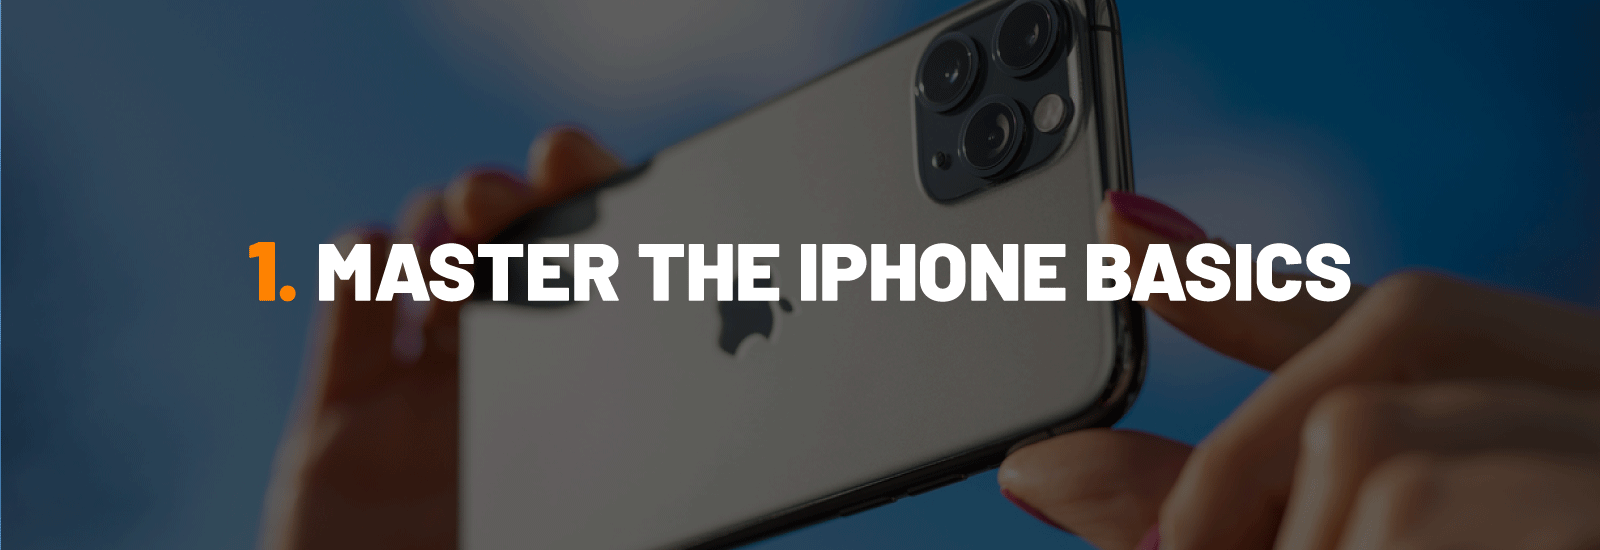 #1 Tip For Better iPhone Real Estate Photos - Master the iPhone Basics